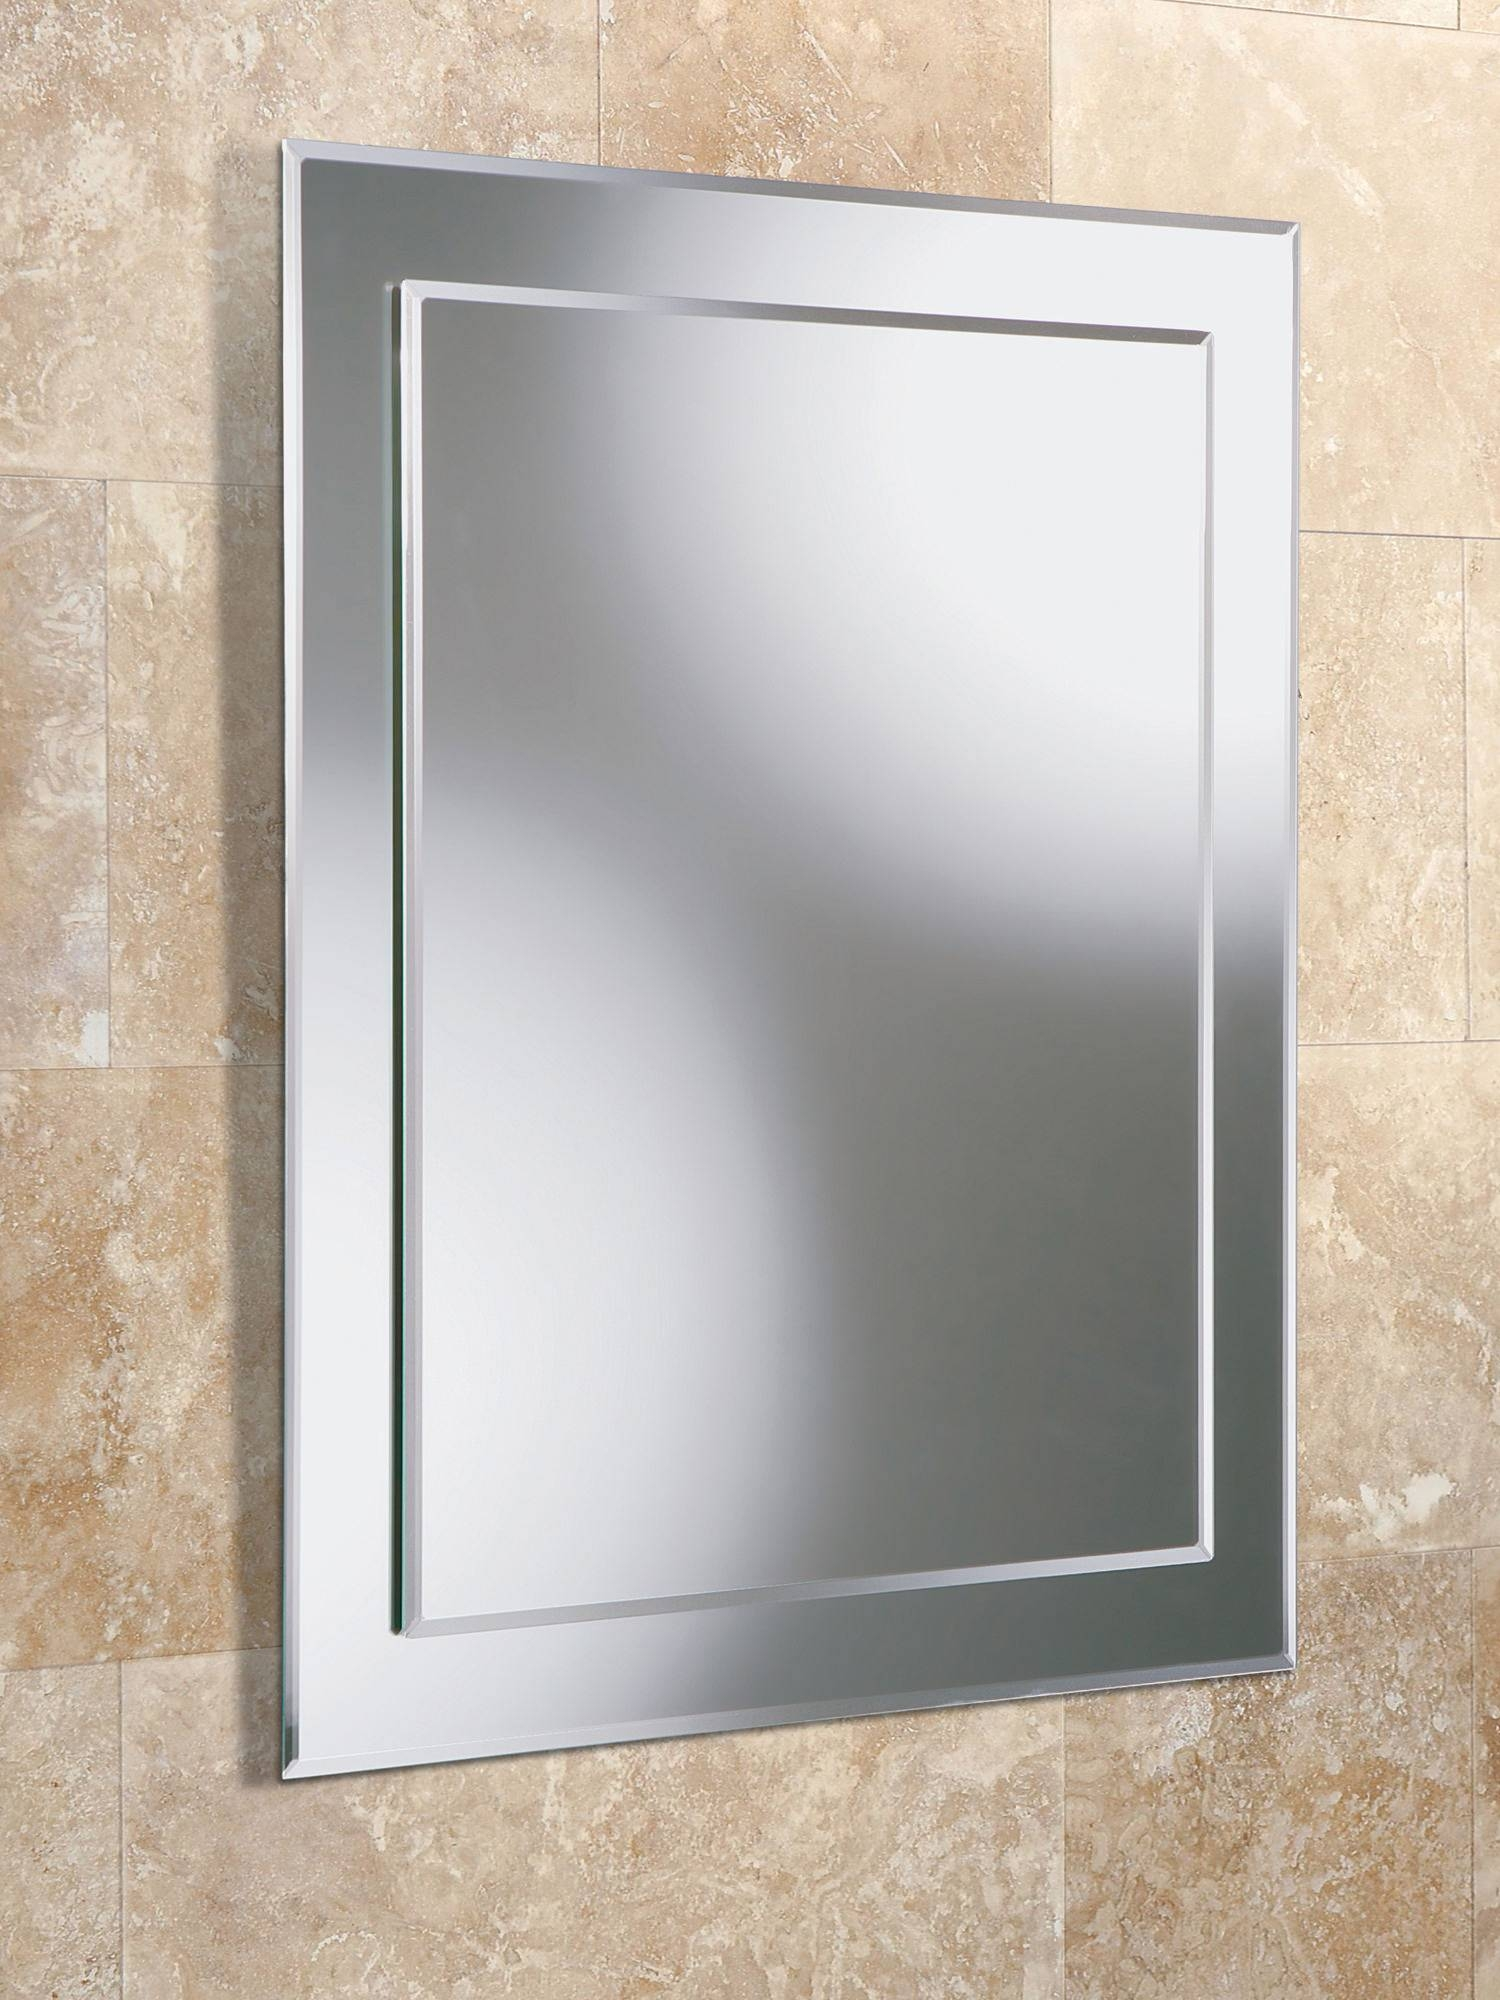 Hib Olivia Rectangular Bevelled Mirror On Mirror 400 X 600Mm with regard to Bevelled Bathroom Mirrors (Image 10 of 15)